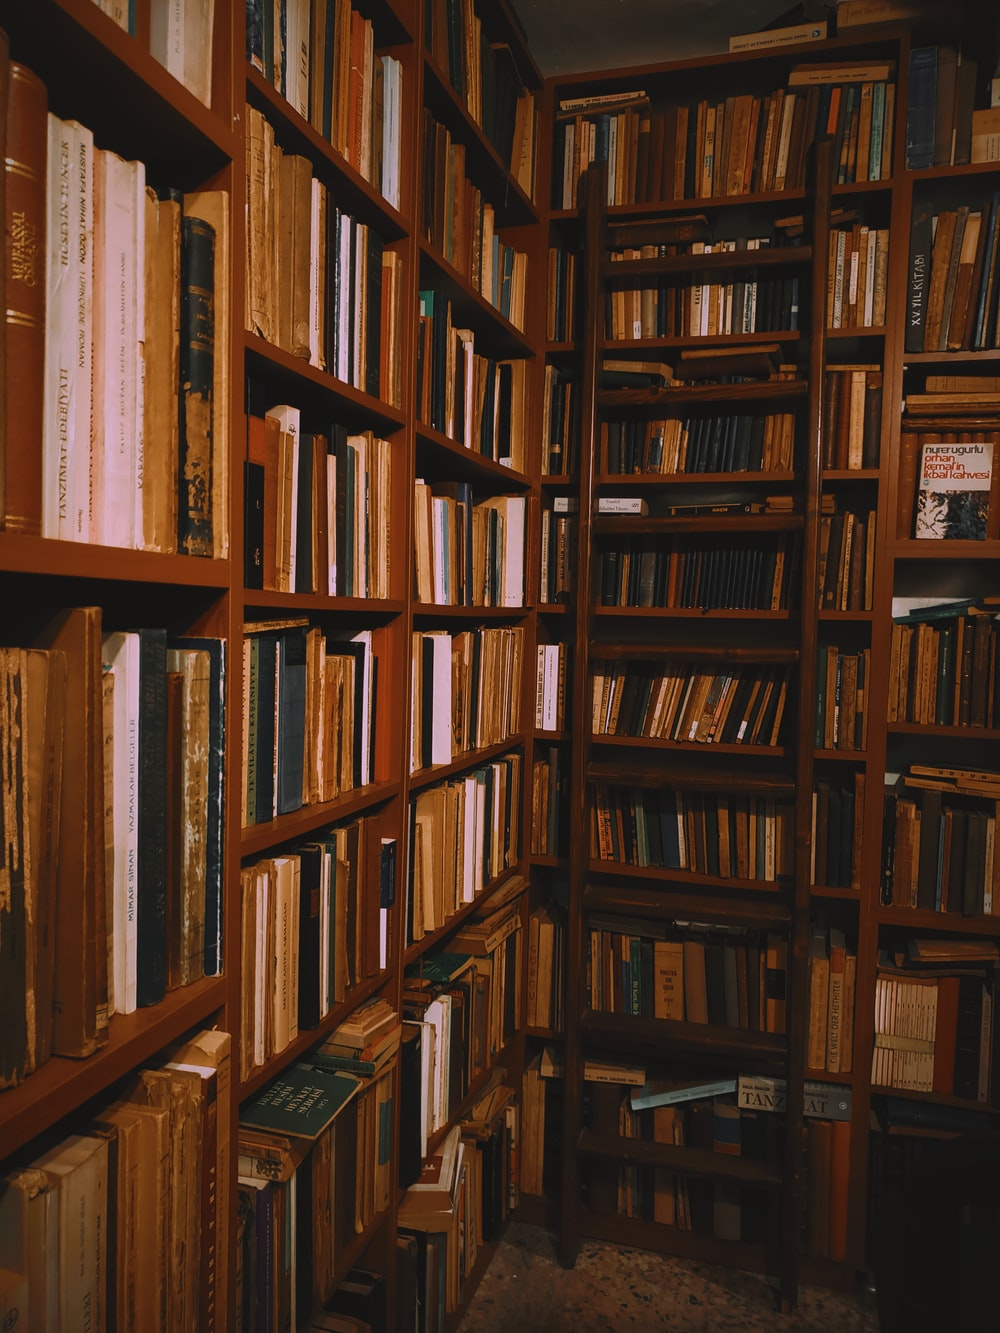 books stacked on wooden shelves in a library